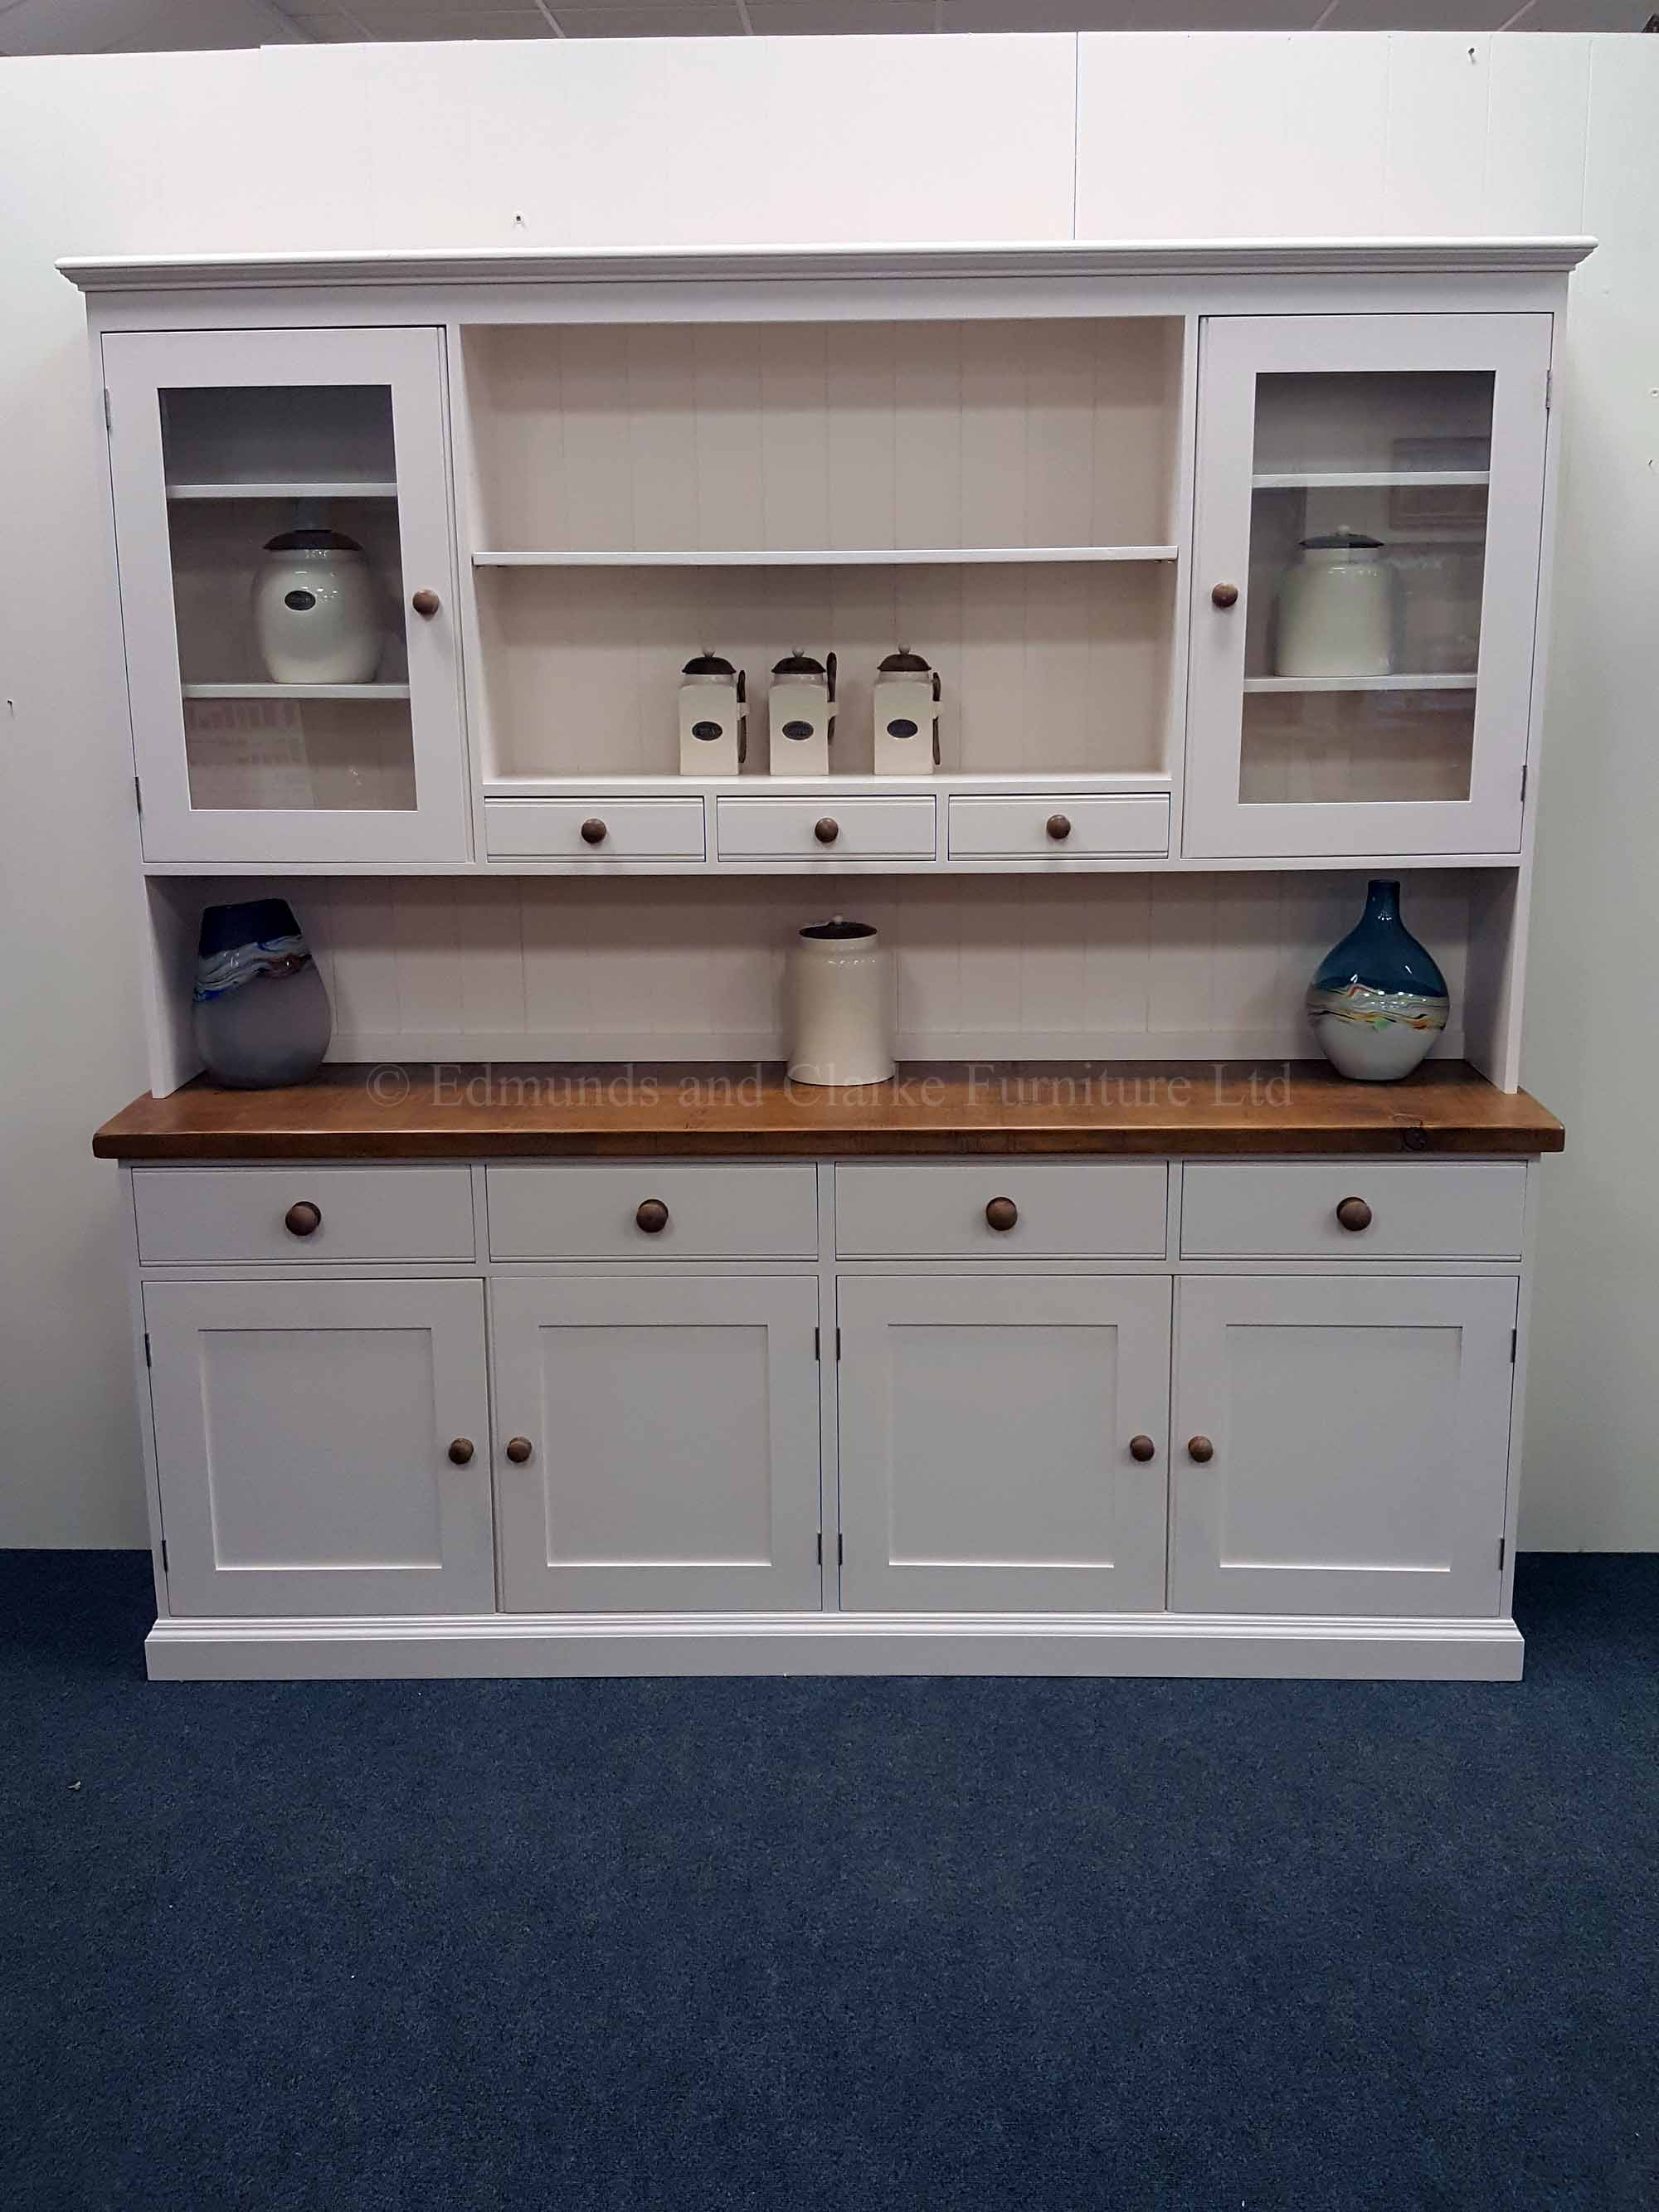 Plain Painted 7ft Kitchen Dresser. image showing rough sawn chunky pine top with matching knobs and painted shelves on the rack. may colours and handle options available